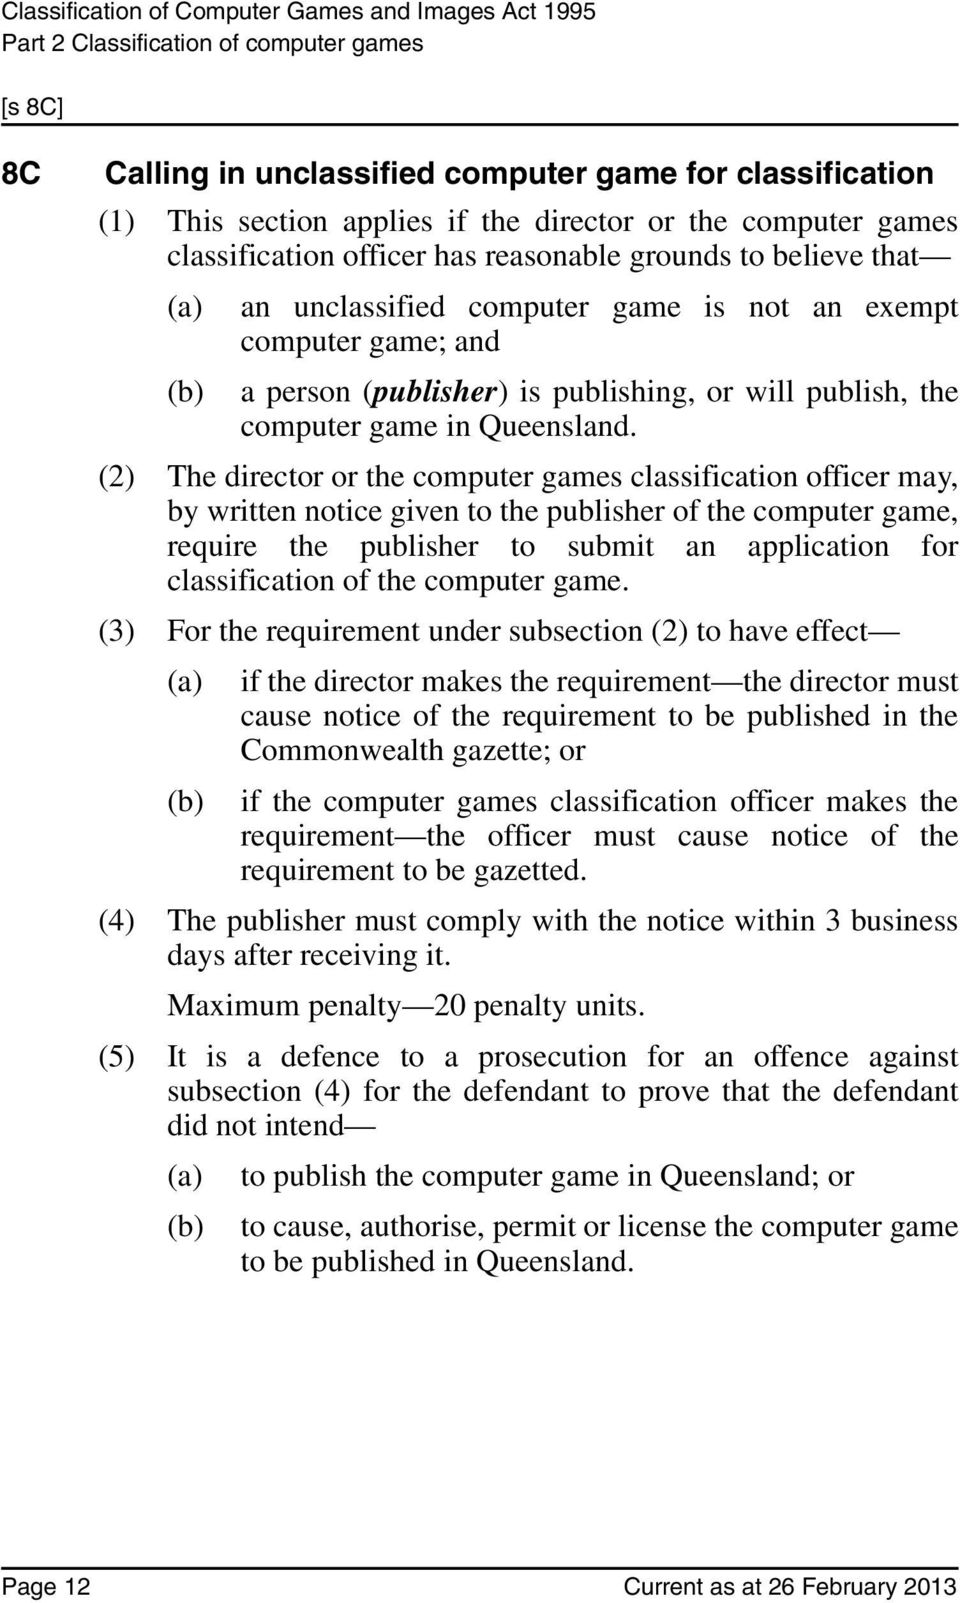 (2) The director or the computer games classification officer may, by written notice given to the publisher of the computer game, require the publisher to submit an application for classification of